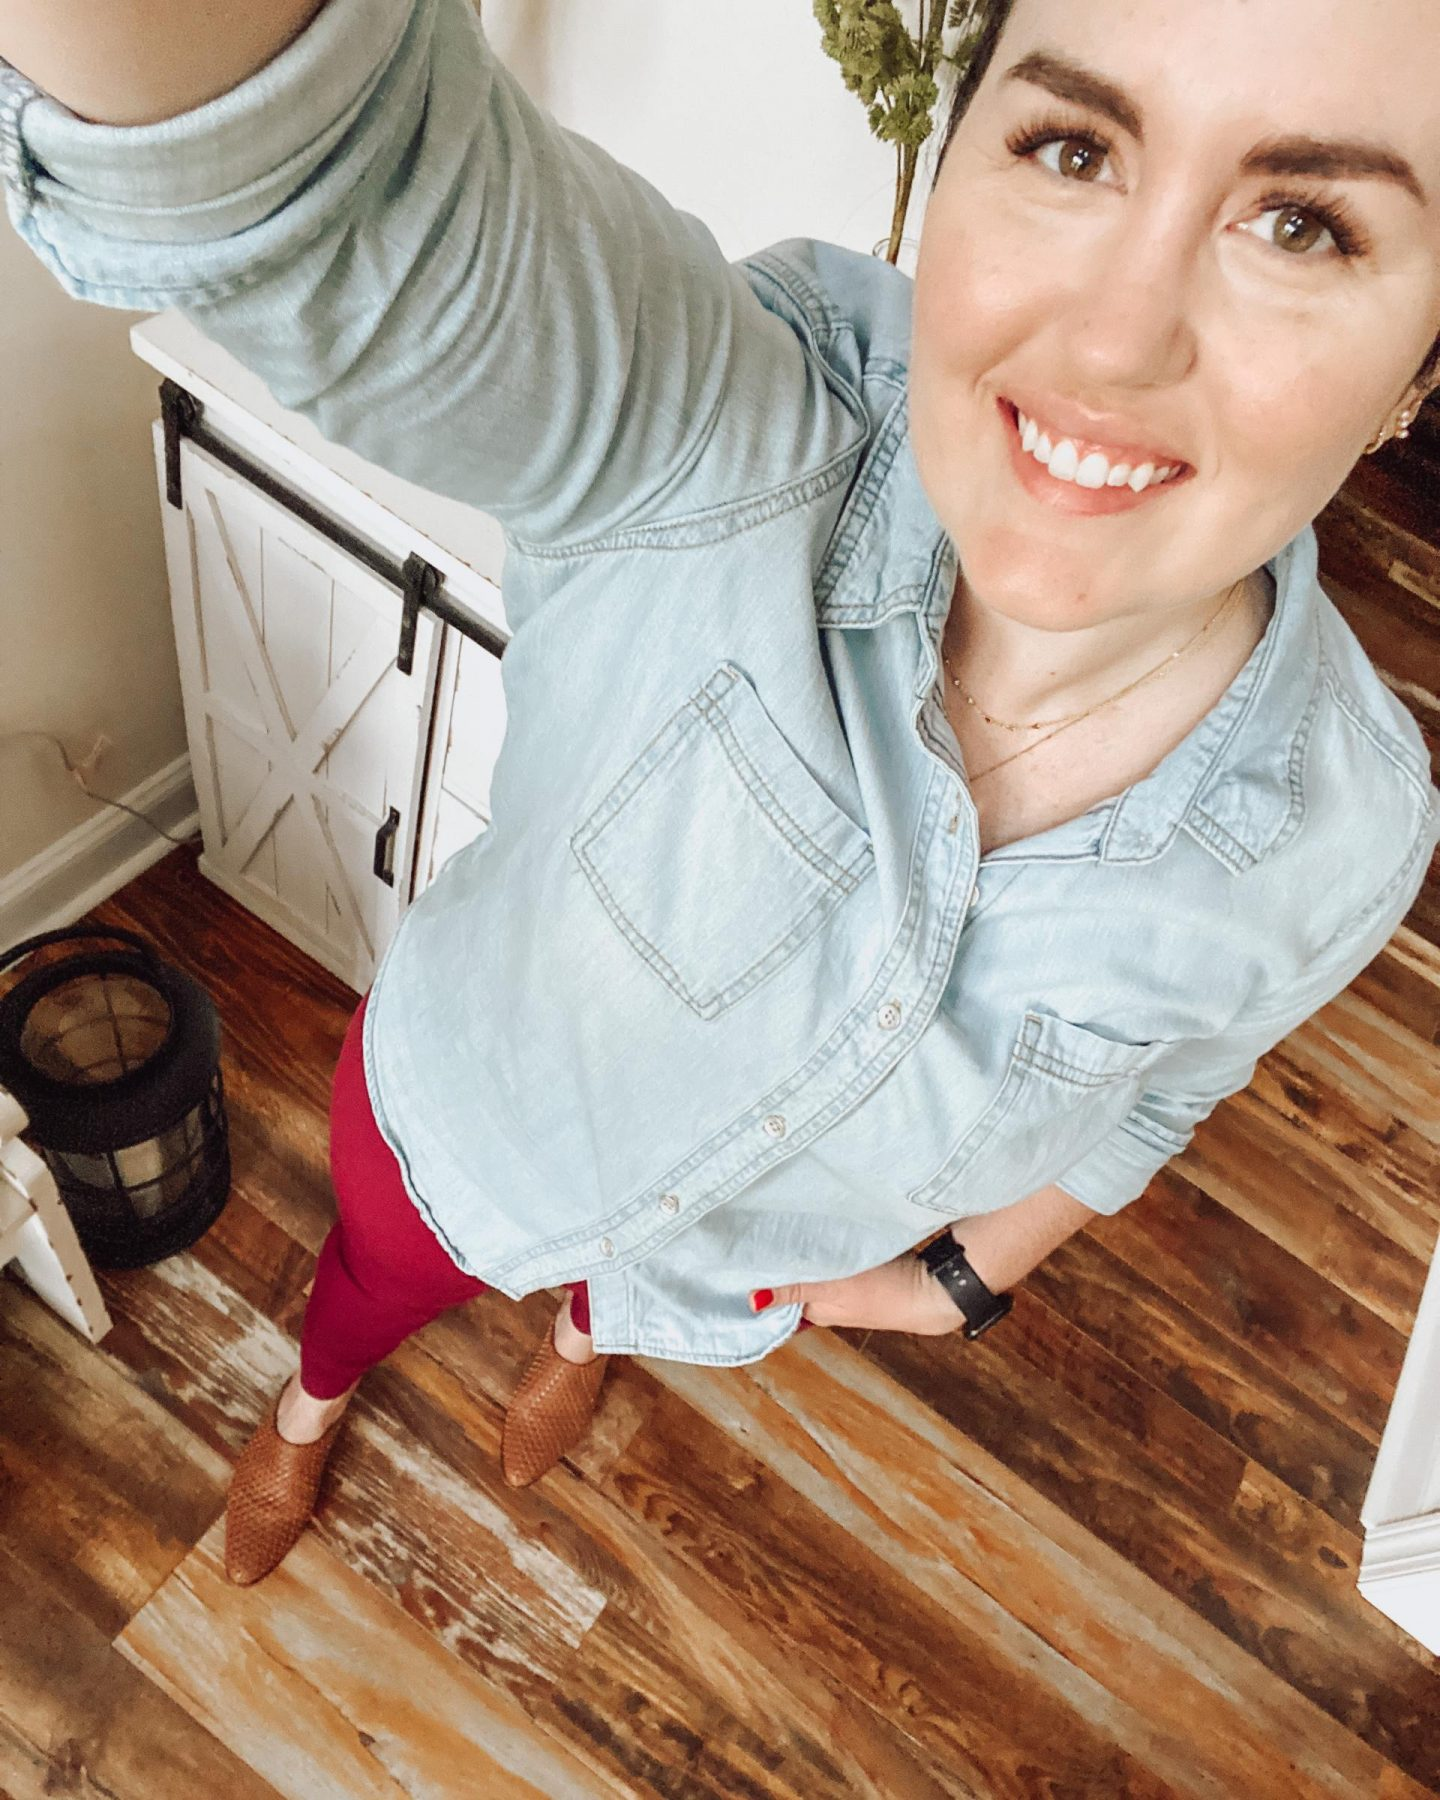 NC blogger Rebecca Lately is sharing her Nisolo Ama Mules review. If you're looking for comfortable and versatile shoes, check these out!